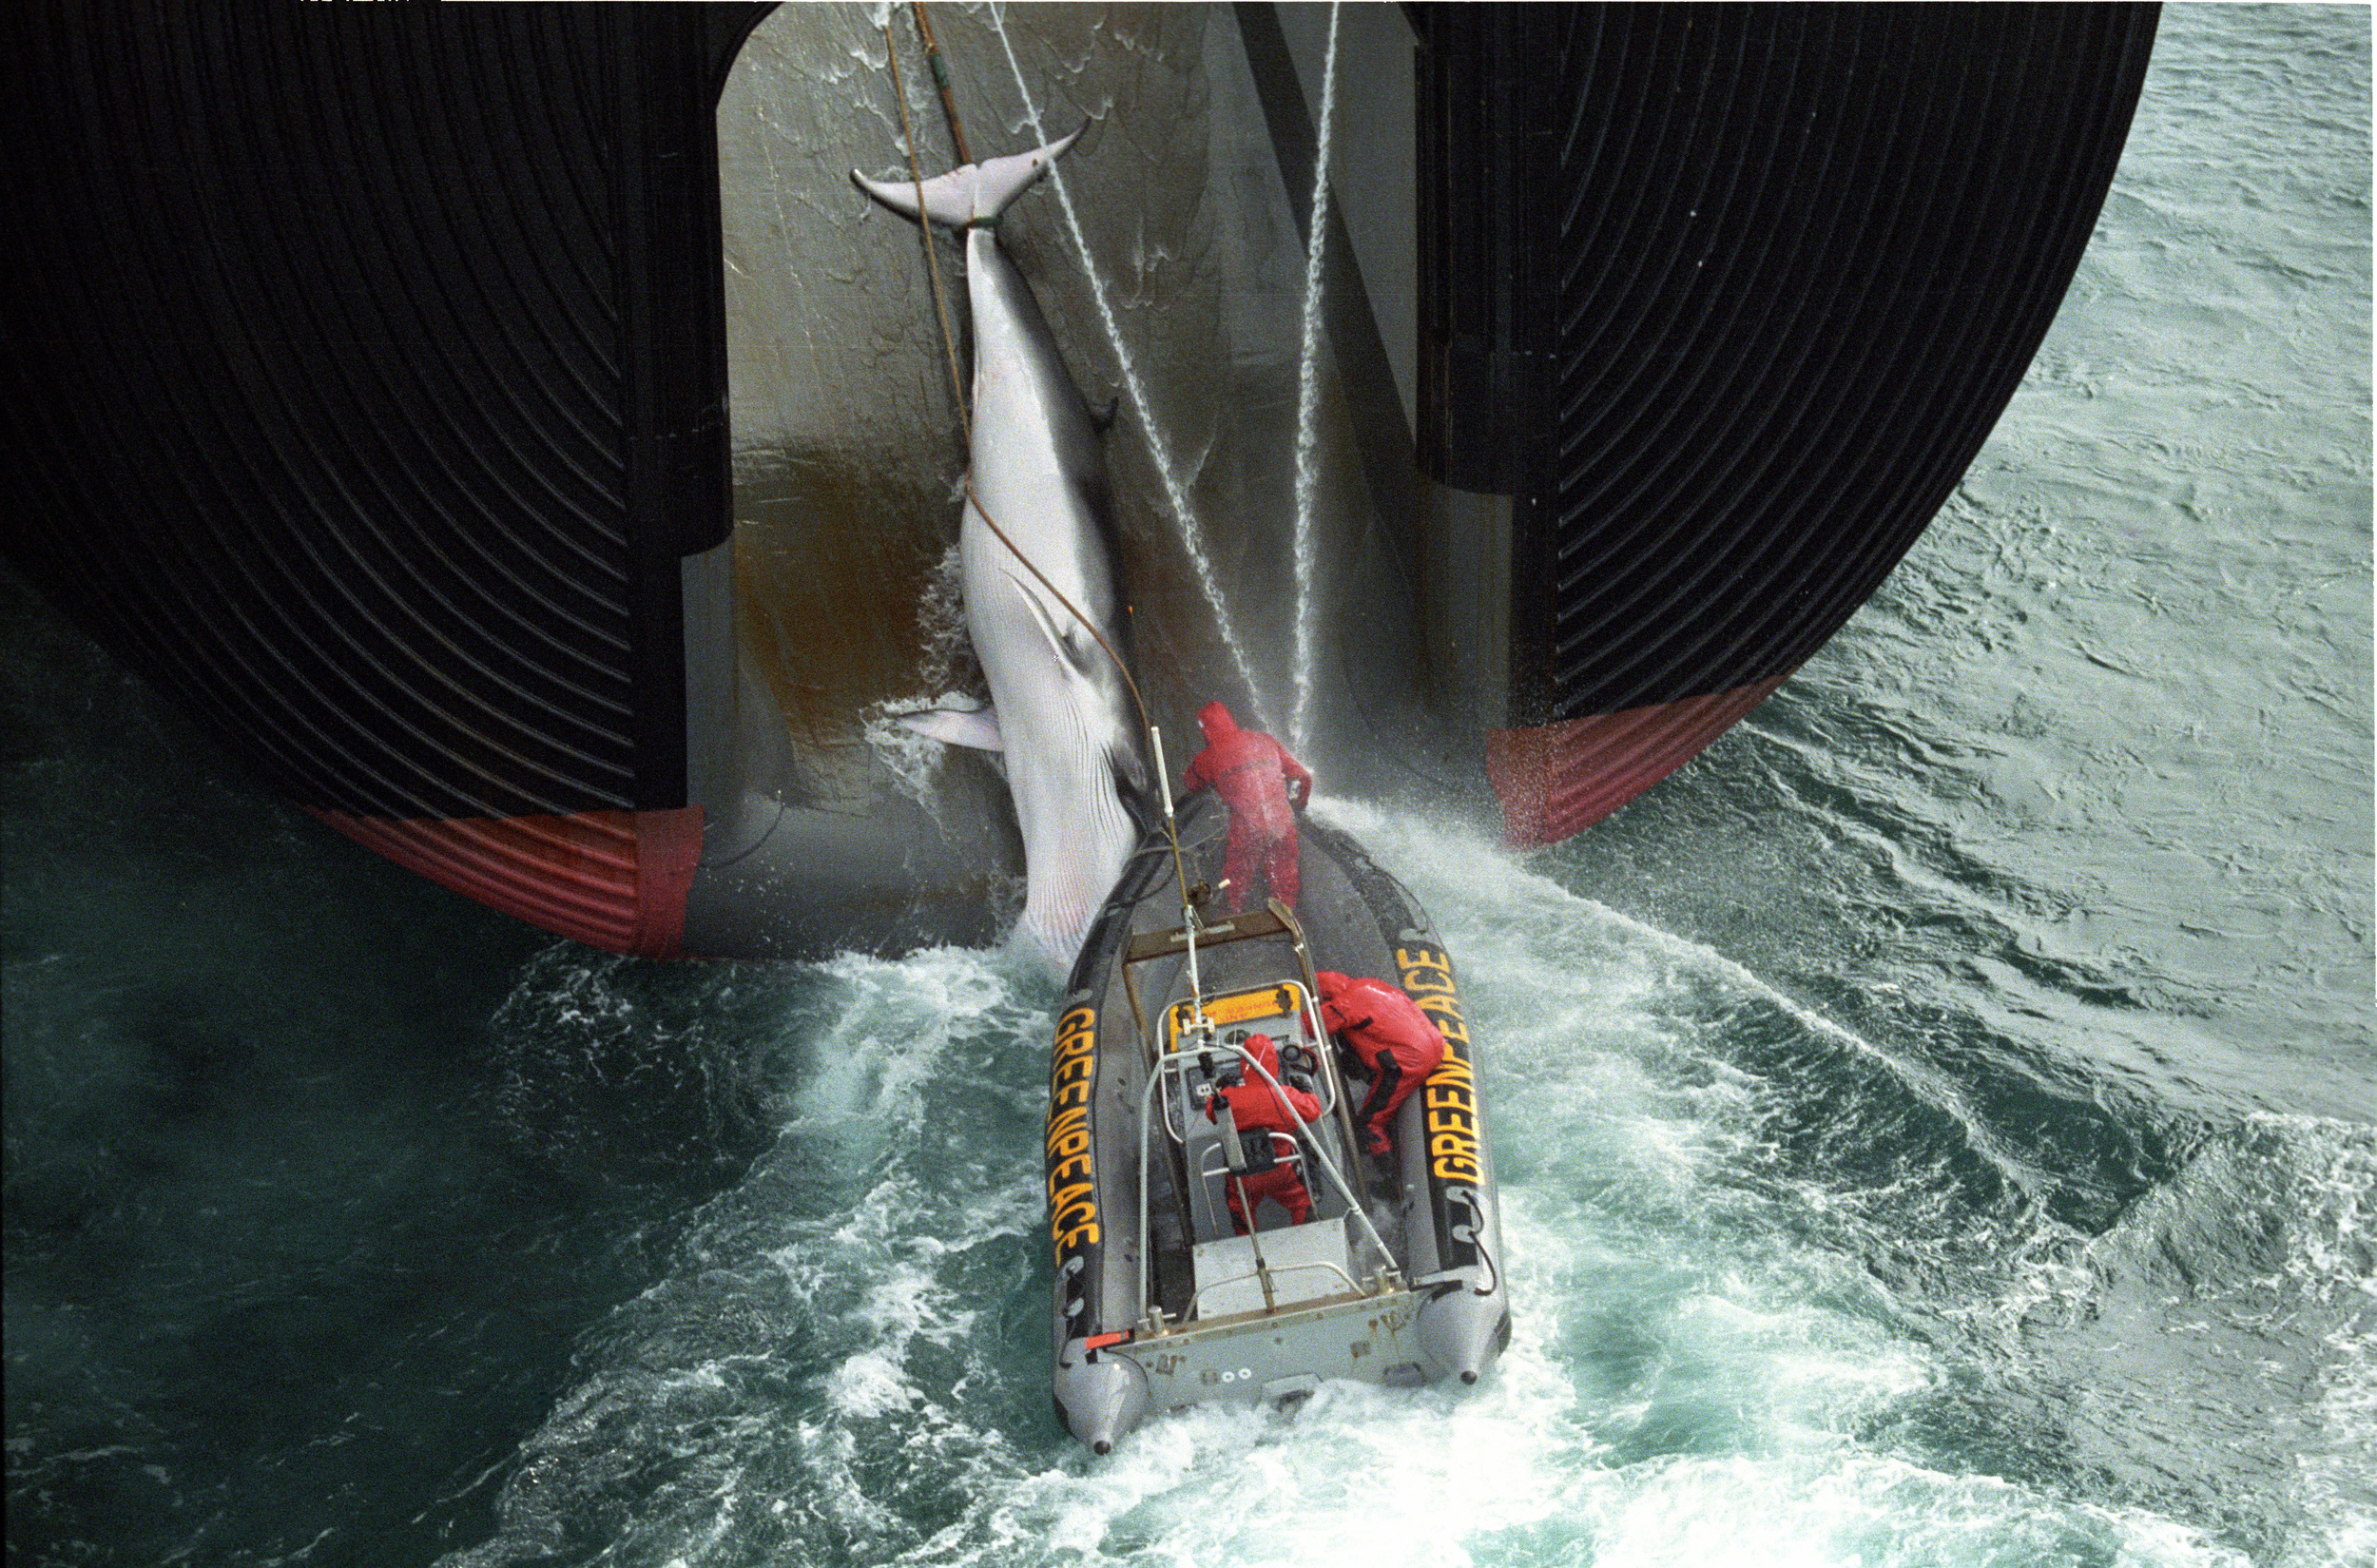 Greenpeace inflatable boat hooks on to a Japanese whaling boat while it is pulling a caught whale on board.